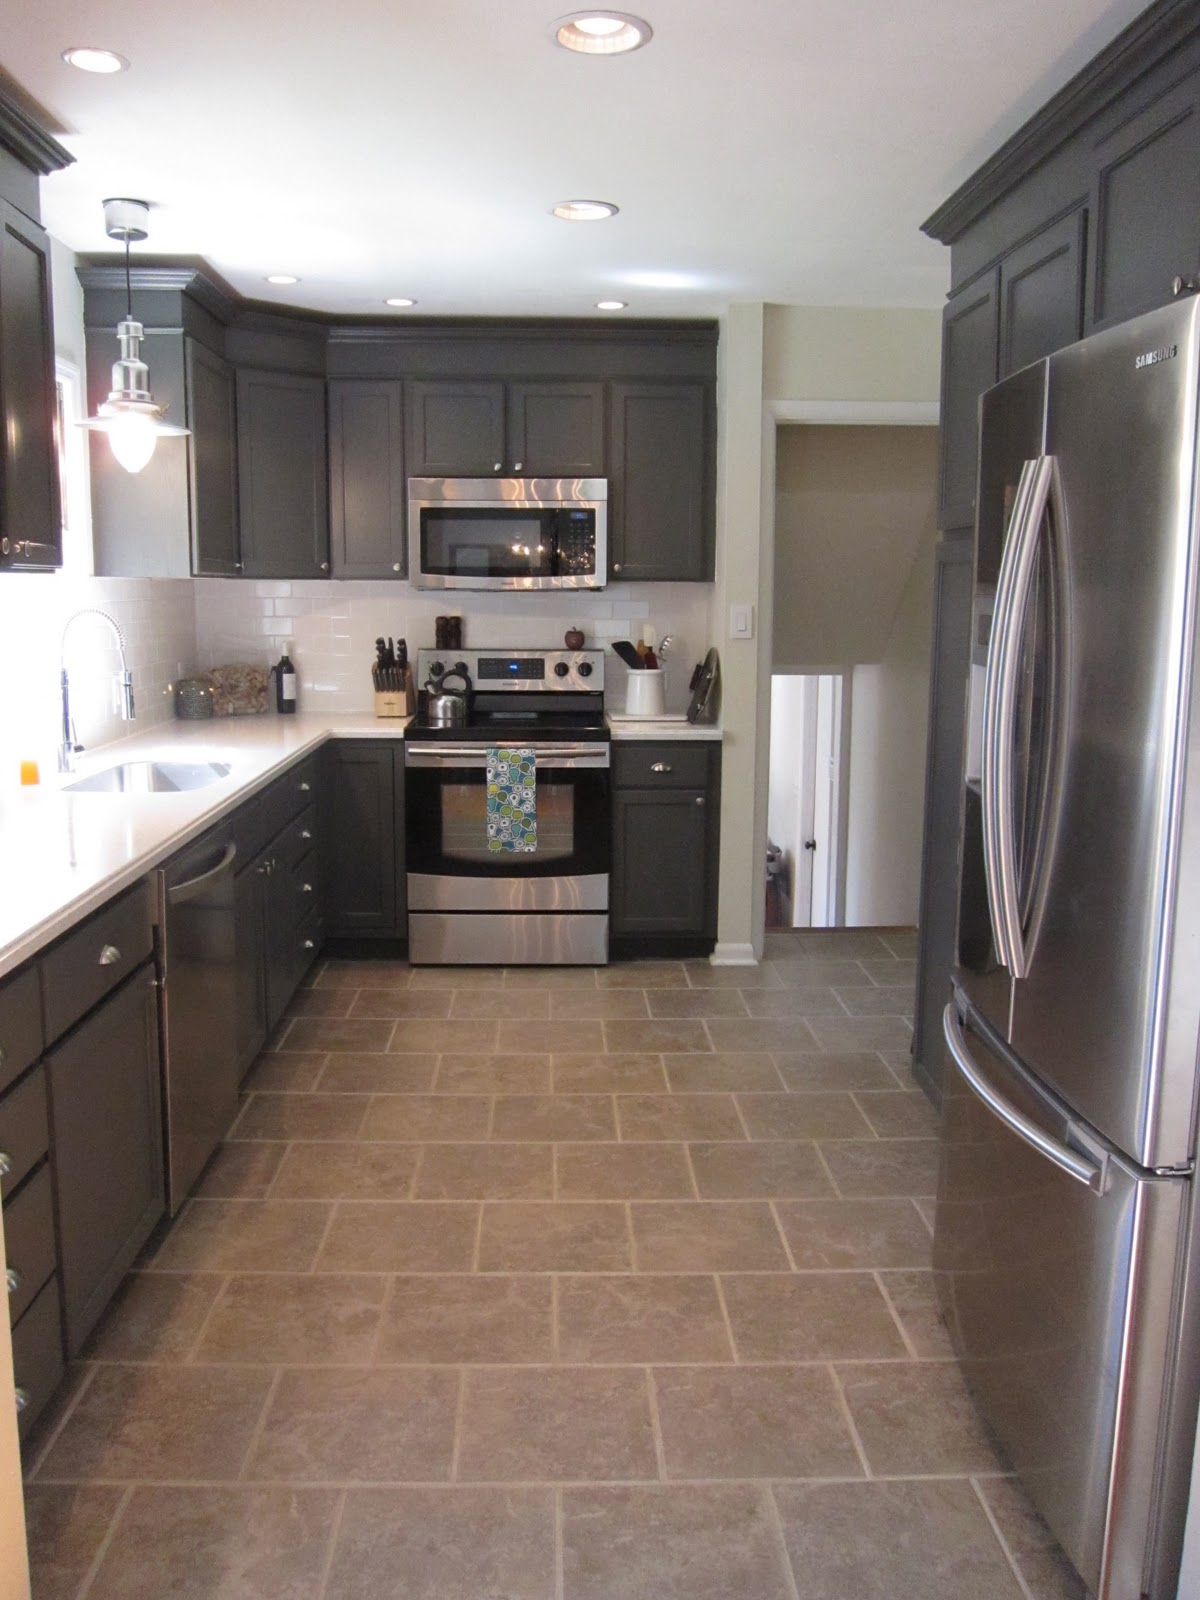 Remodelaholic Kitchen Redo With Dark Gray Cabinets White Subway Tile - Grey cabinets in small kitchen